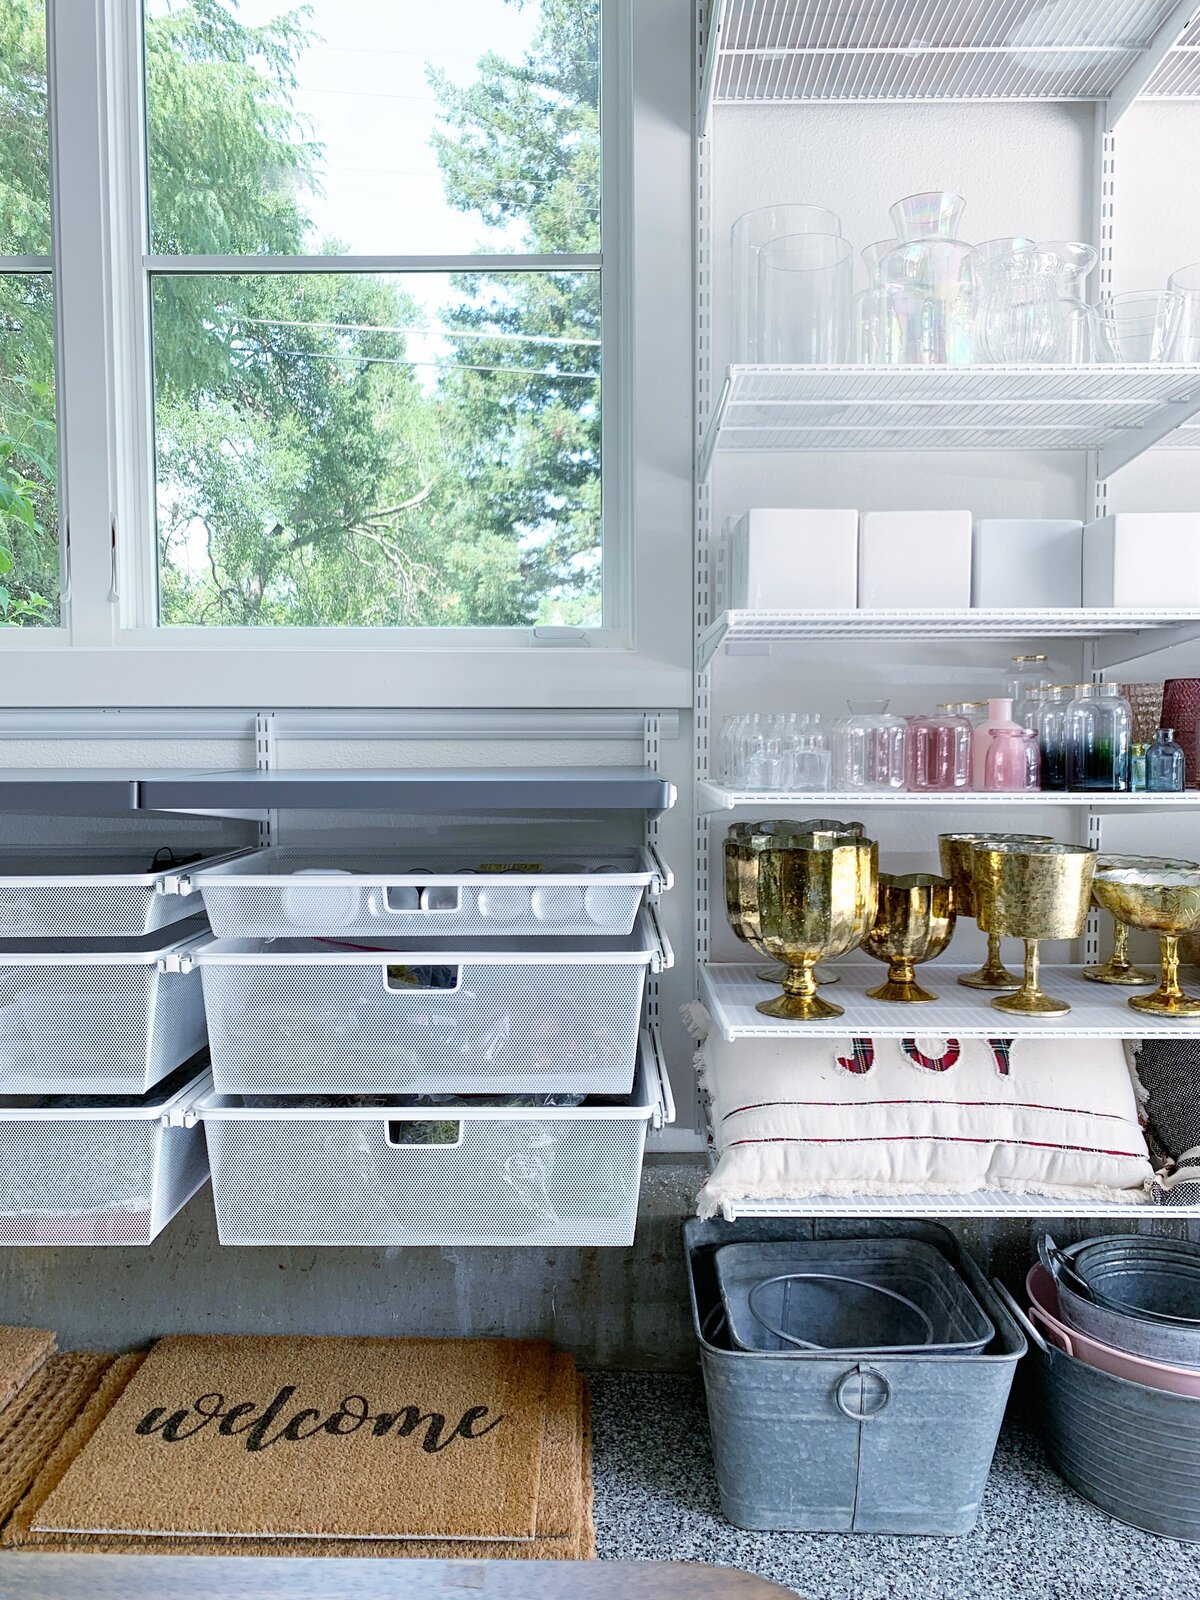 workspace drawers for florist